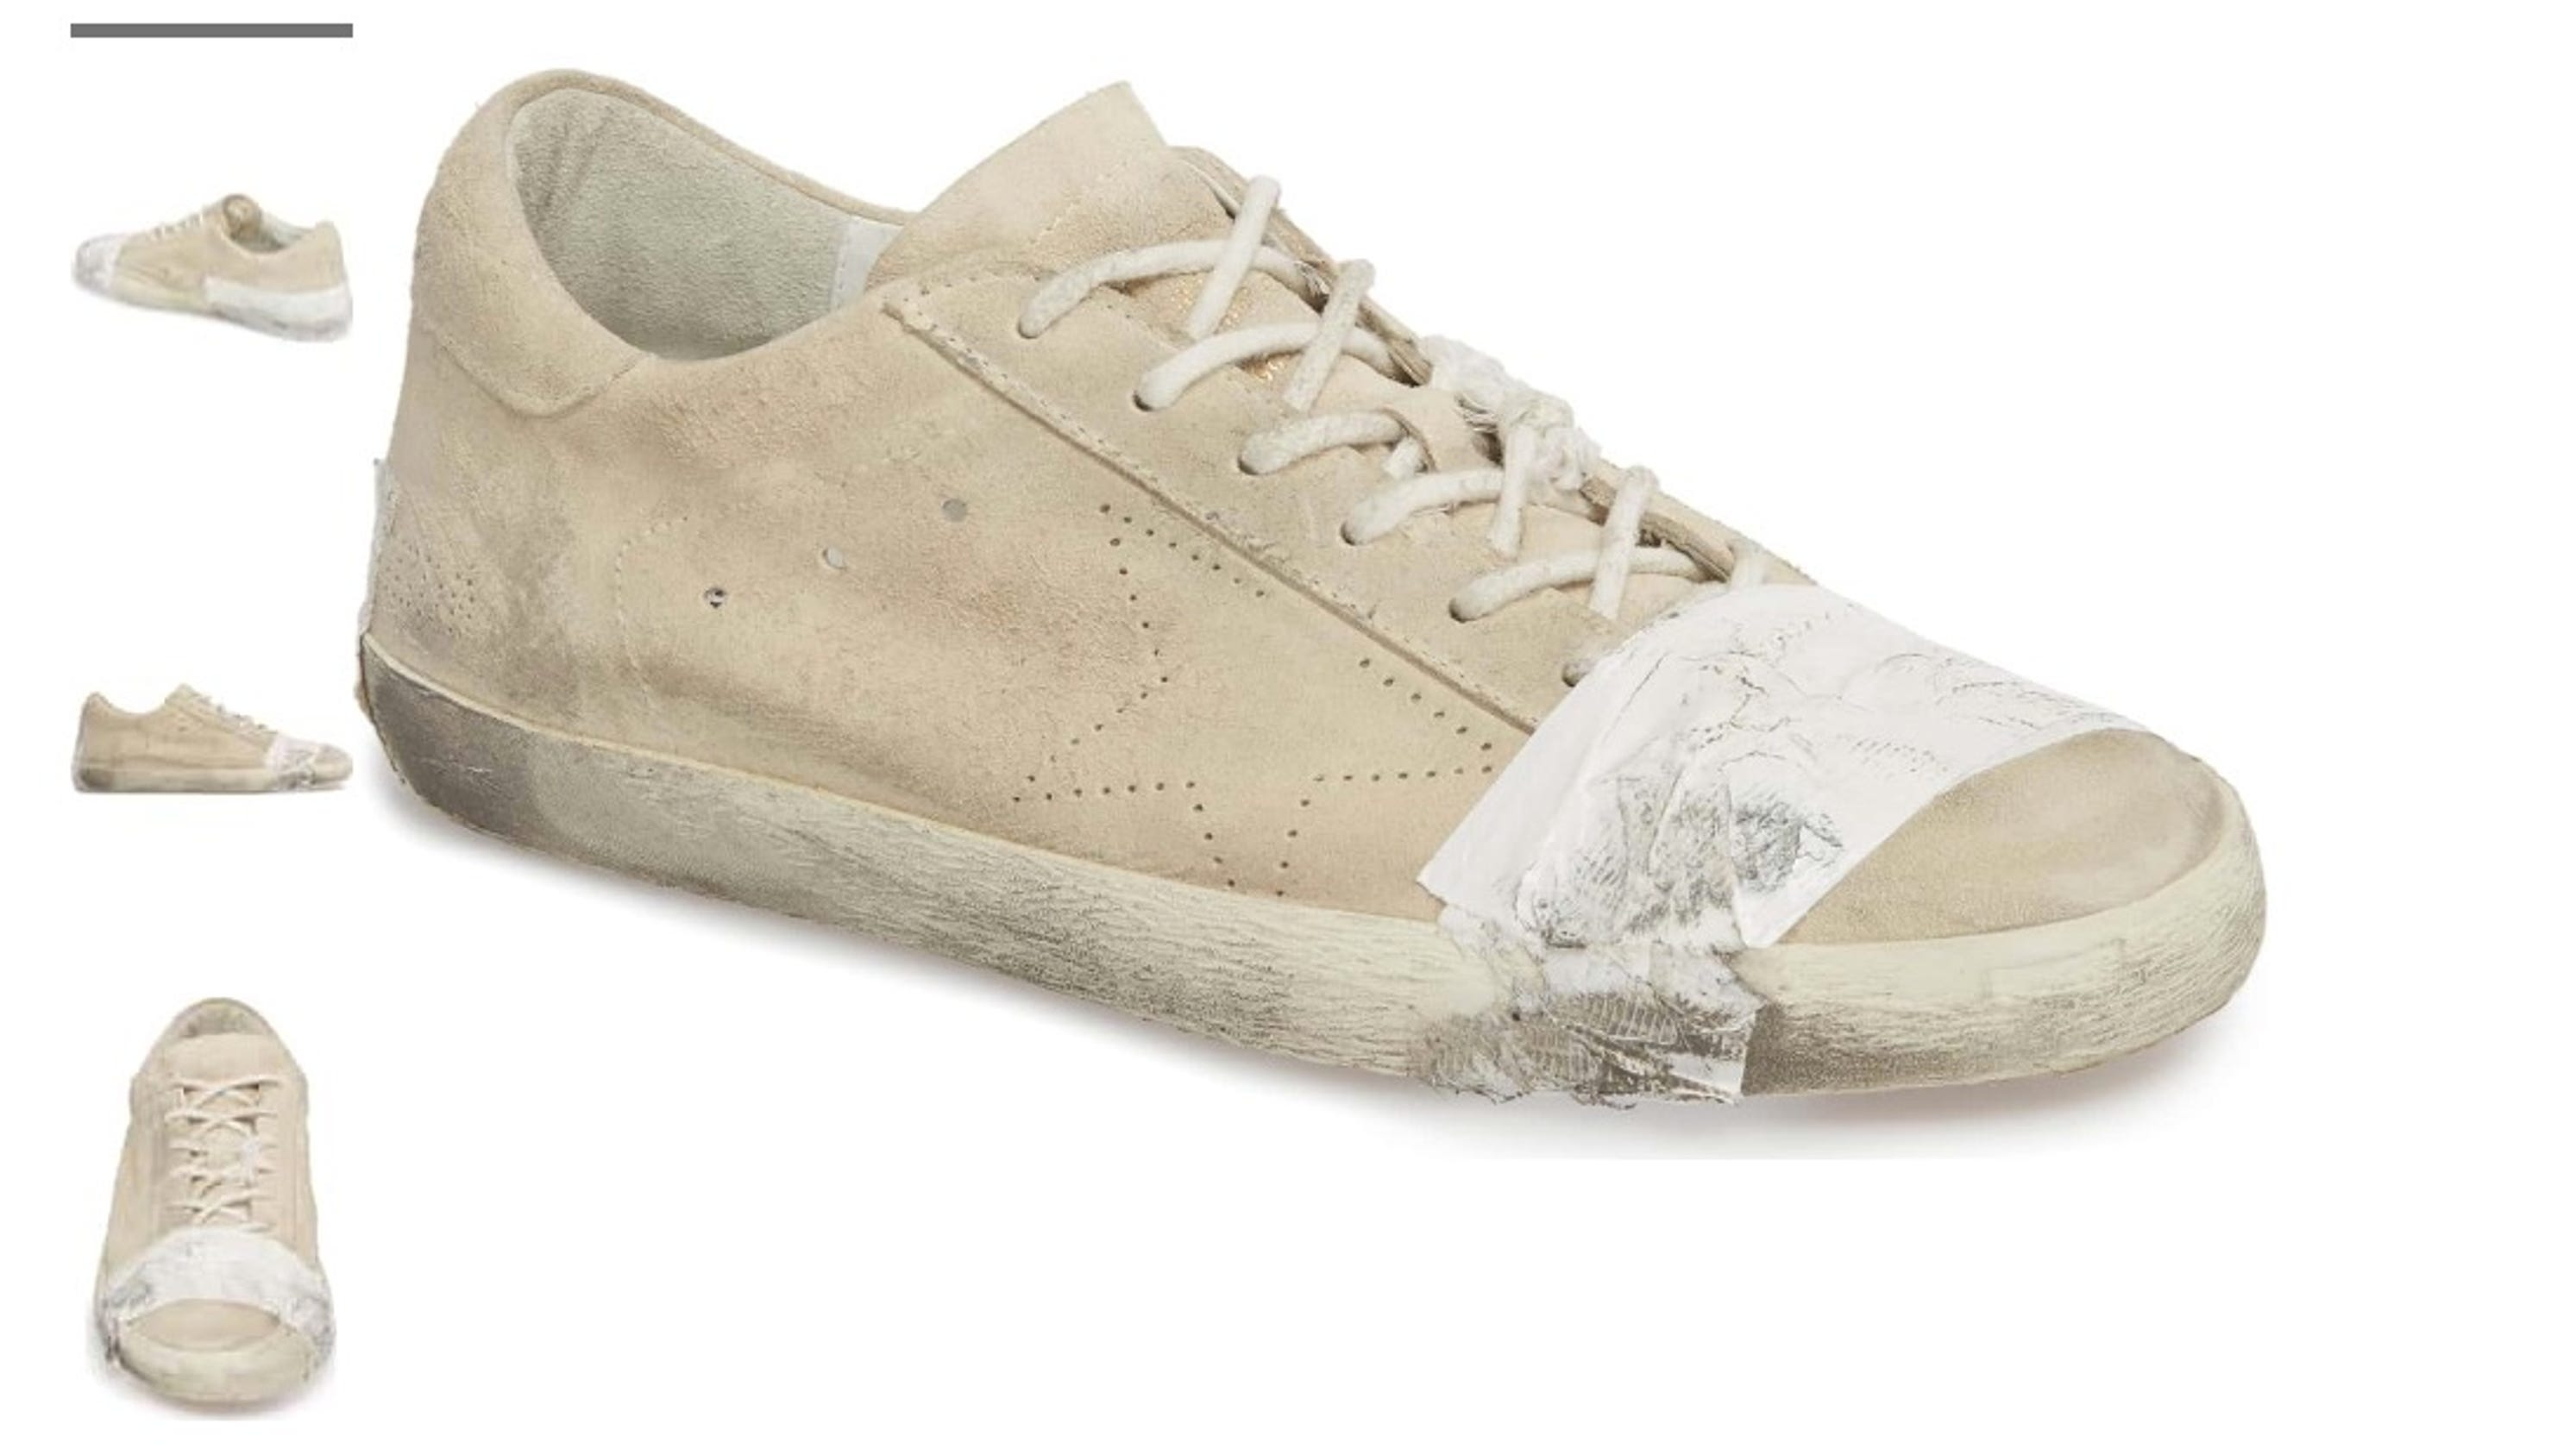 f962967465ae Nordstrom s  530 taped-up sneakers sell out despite consumer outcry